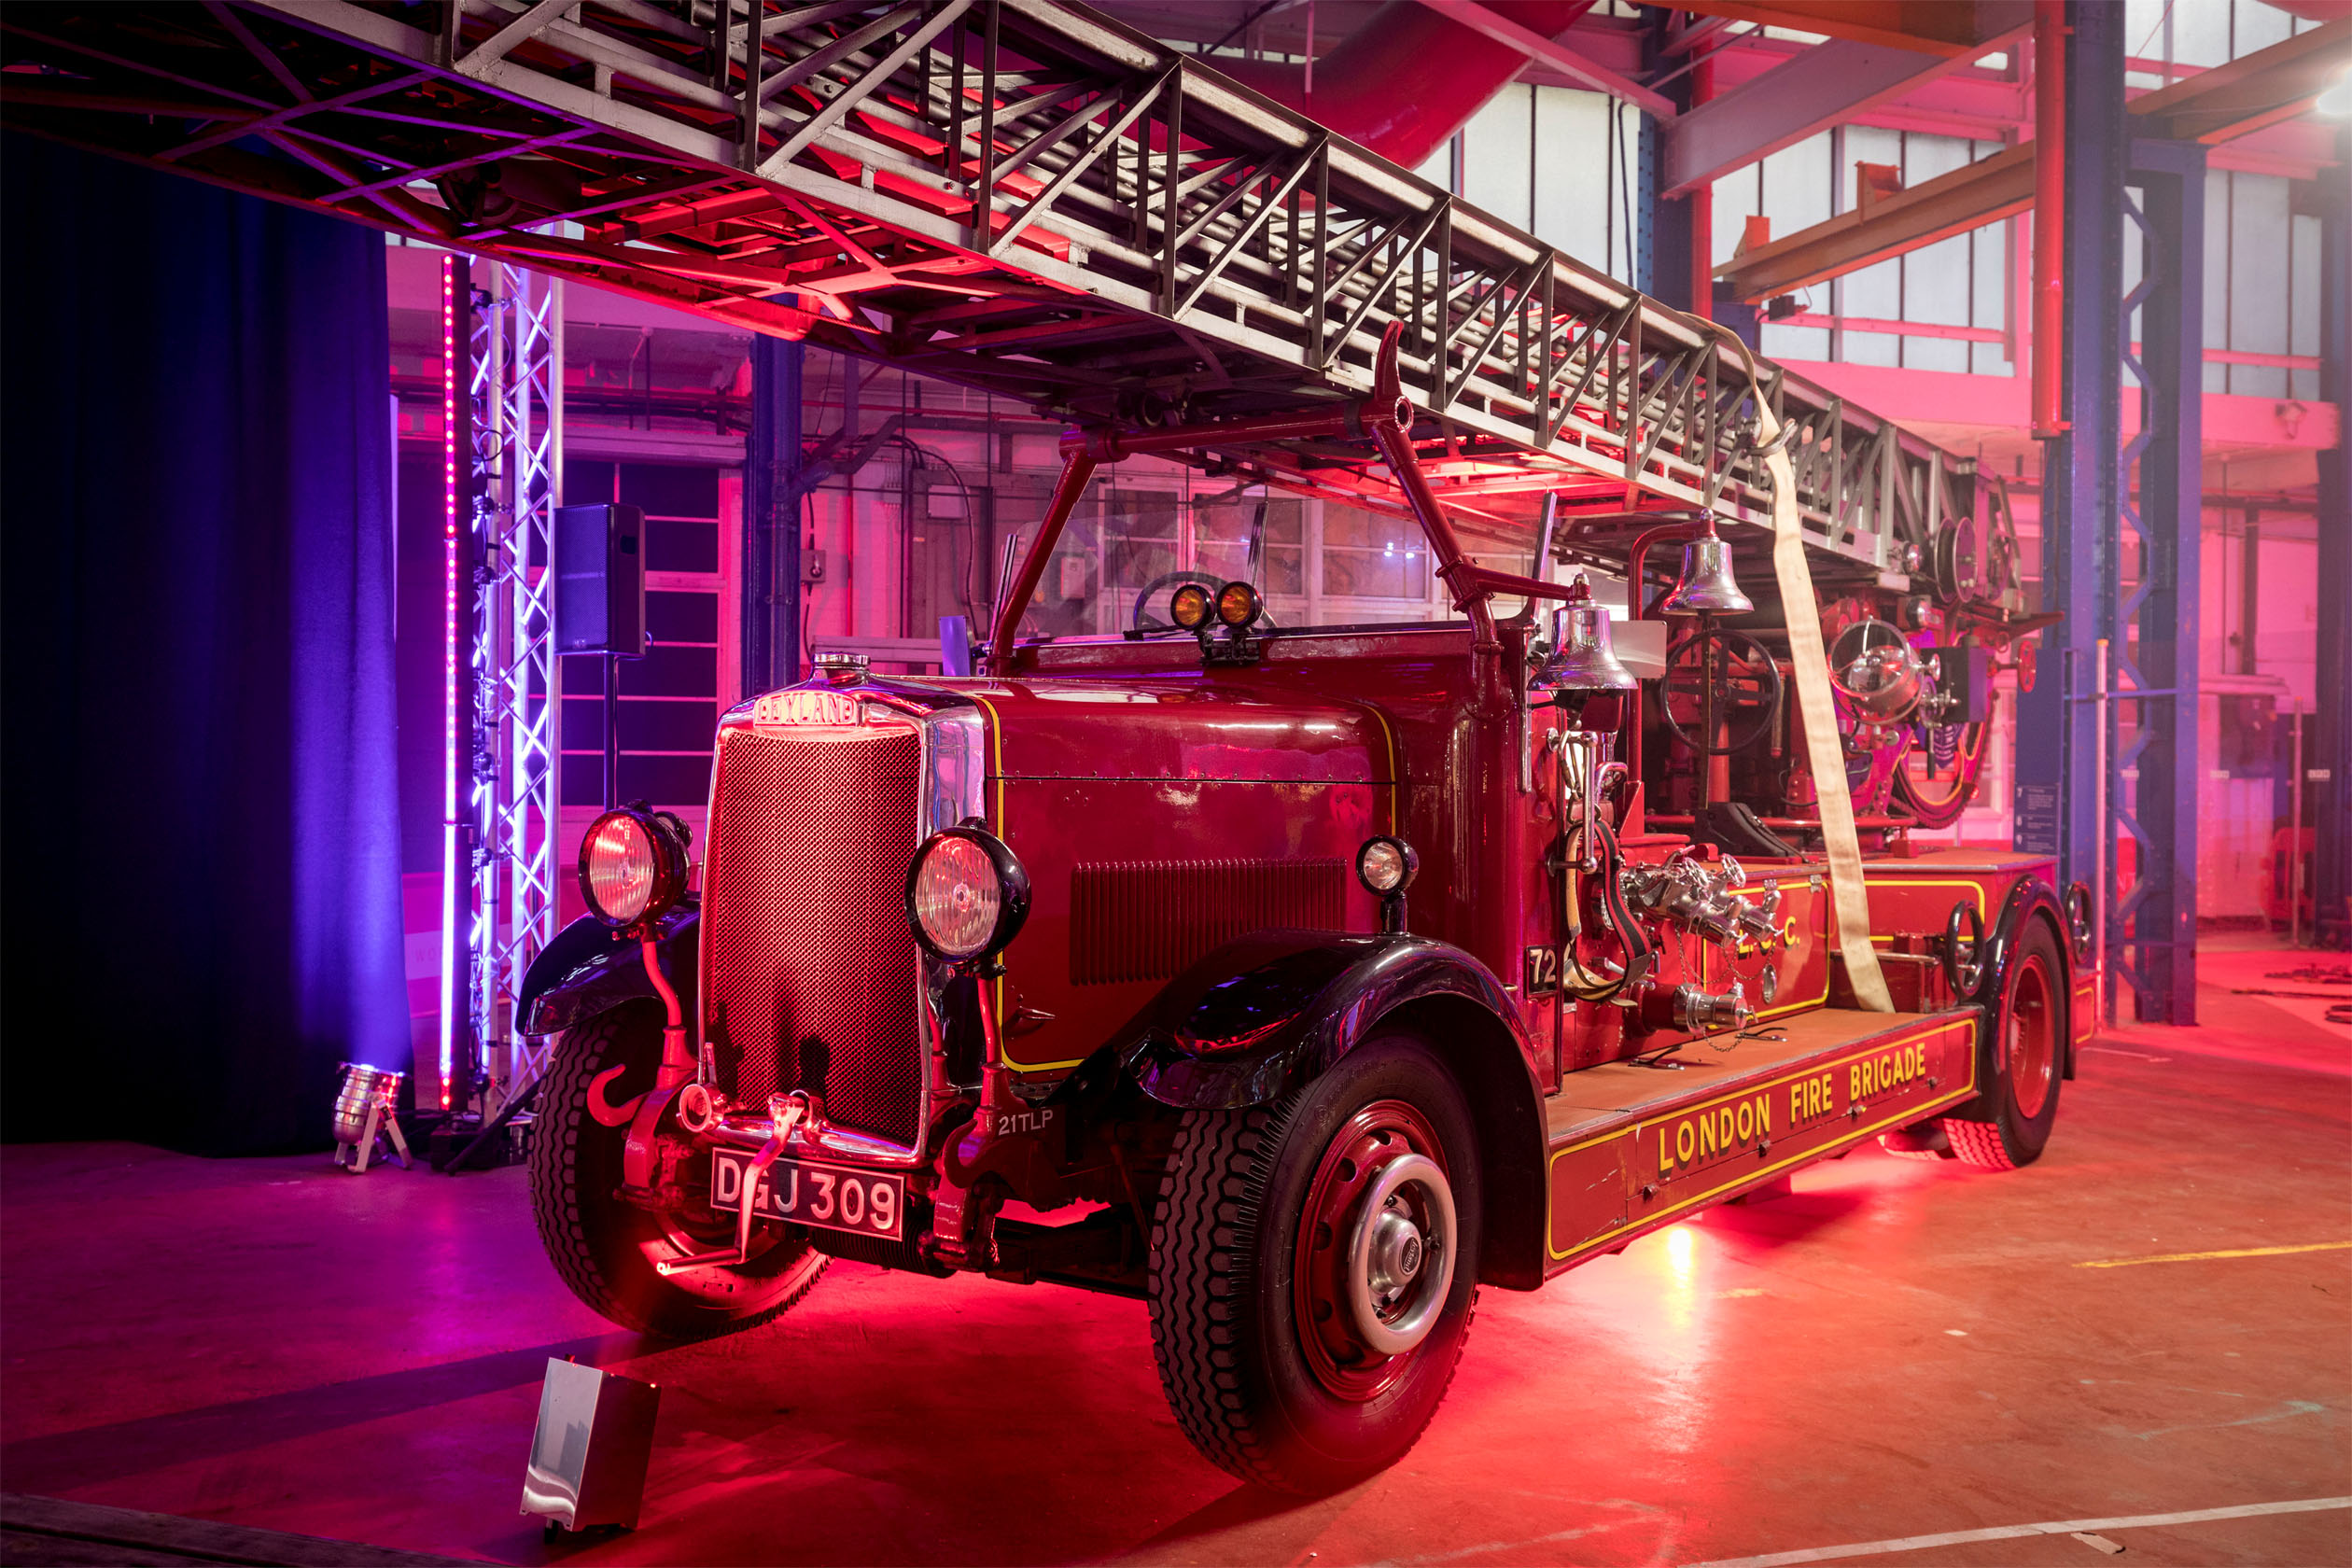 Vintage fire engine at the London Fire Brigade pop-up museum